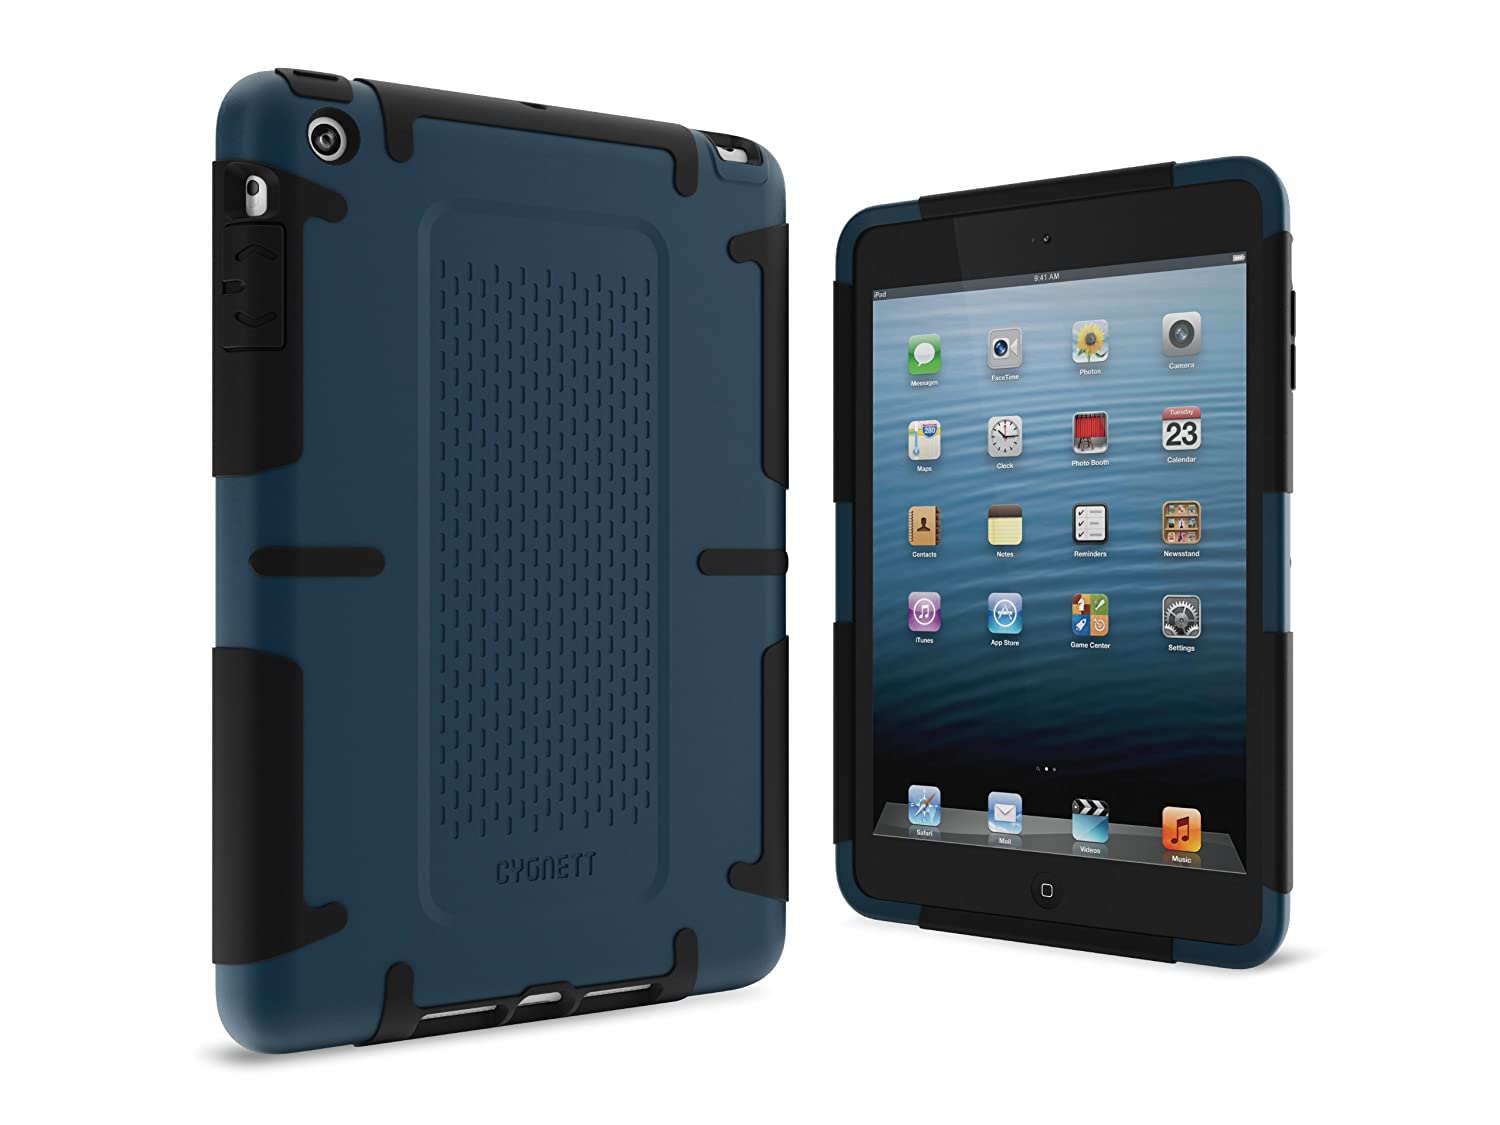 【中古】 Workmate case Grey Shock-absorbing case iPad Mini Slate Grey - CY0966CIWOR B009VFOR90 B009VFOR90, 矢吹町:775e5681 --- a0267596.xsph.ru